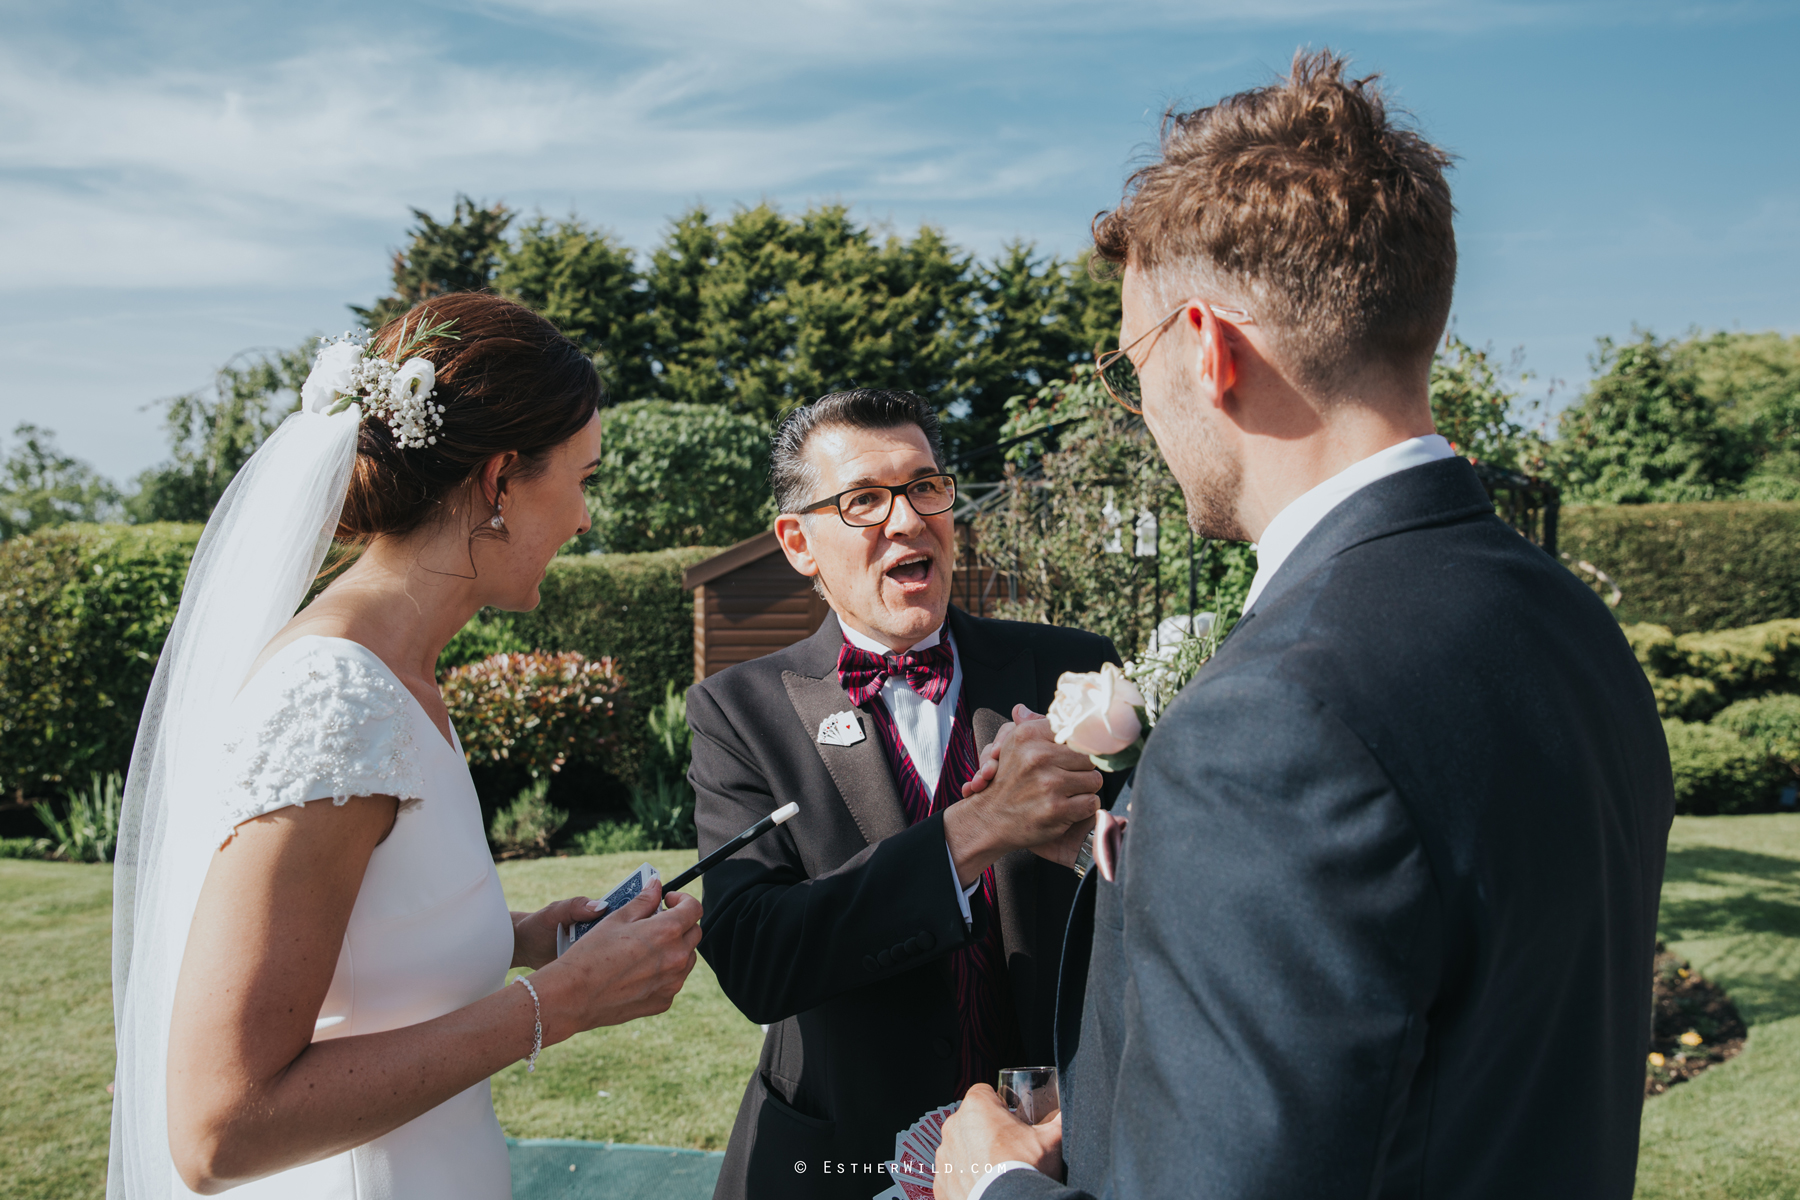 Wootton_Wedding_Copyright_Esther_Wild_Photographer_IMG_2066.jpg